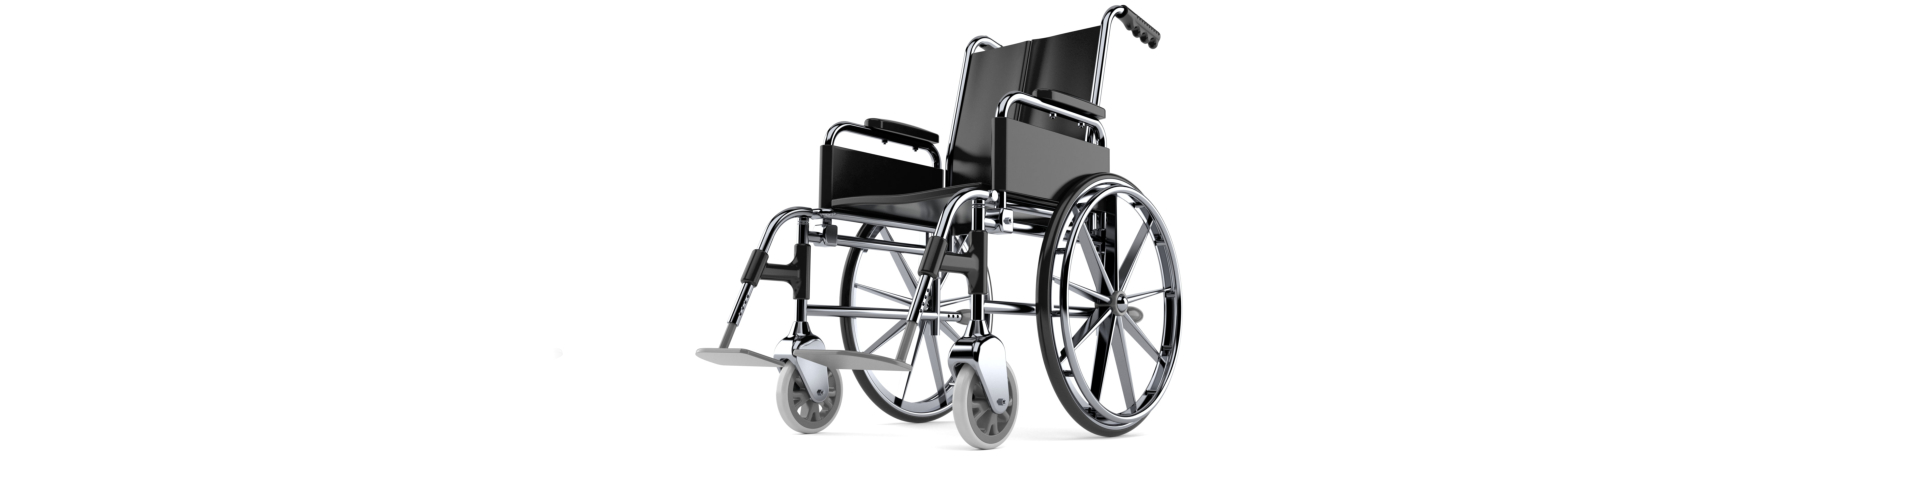 Blue and black foldable lightweight wheelchair on white background